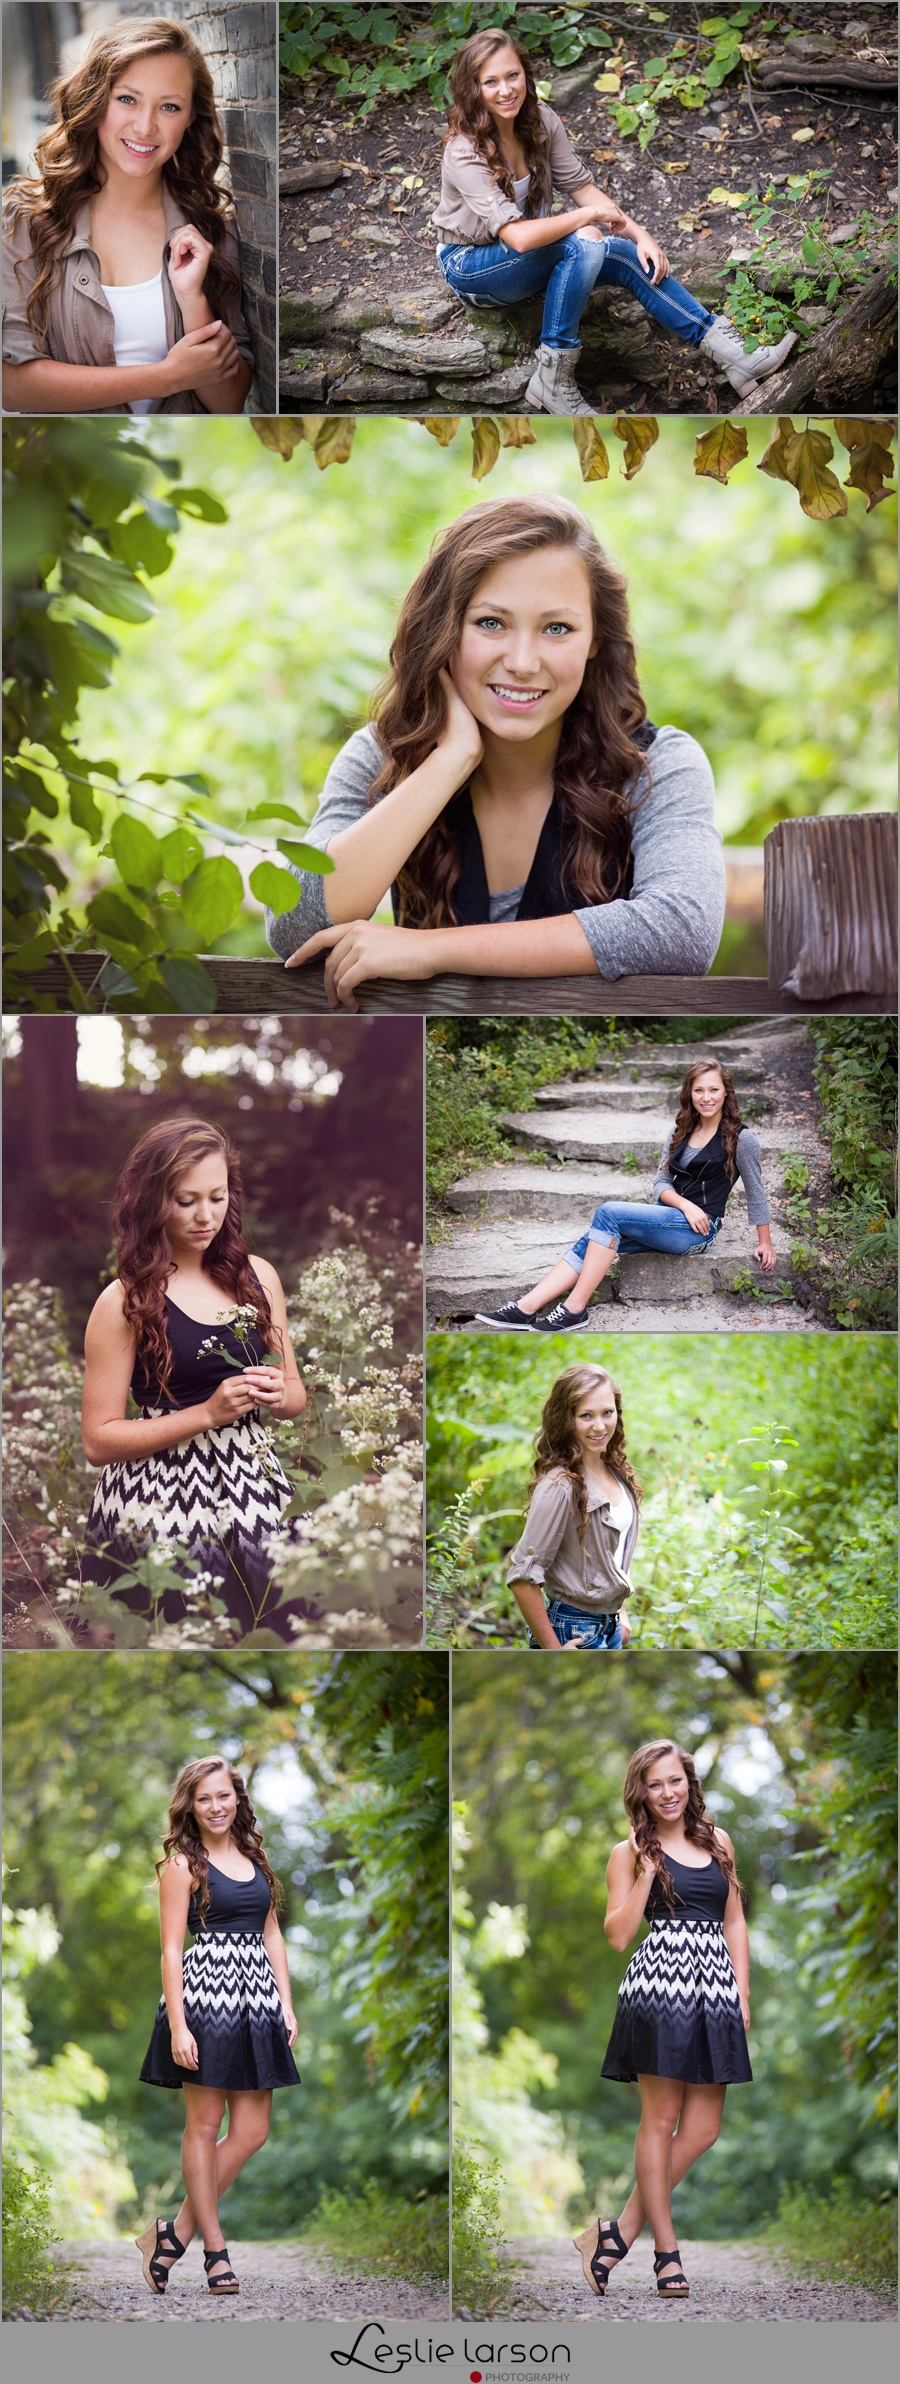 Alysha senior photos leslie larson photograhy stone arch bridge